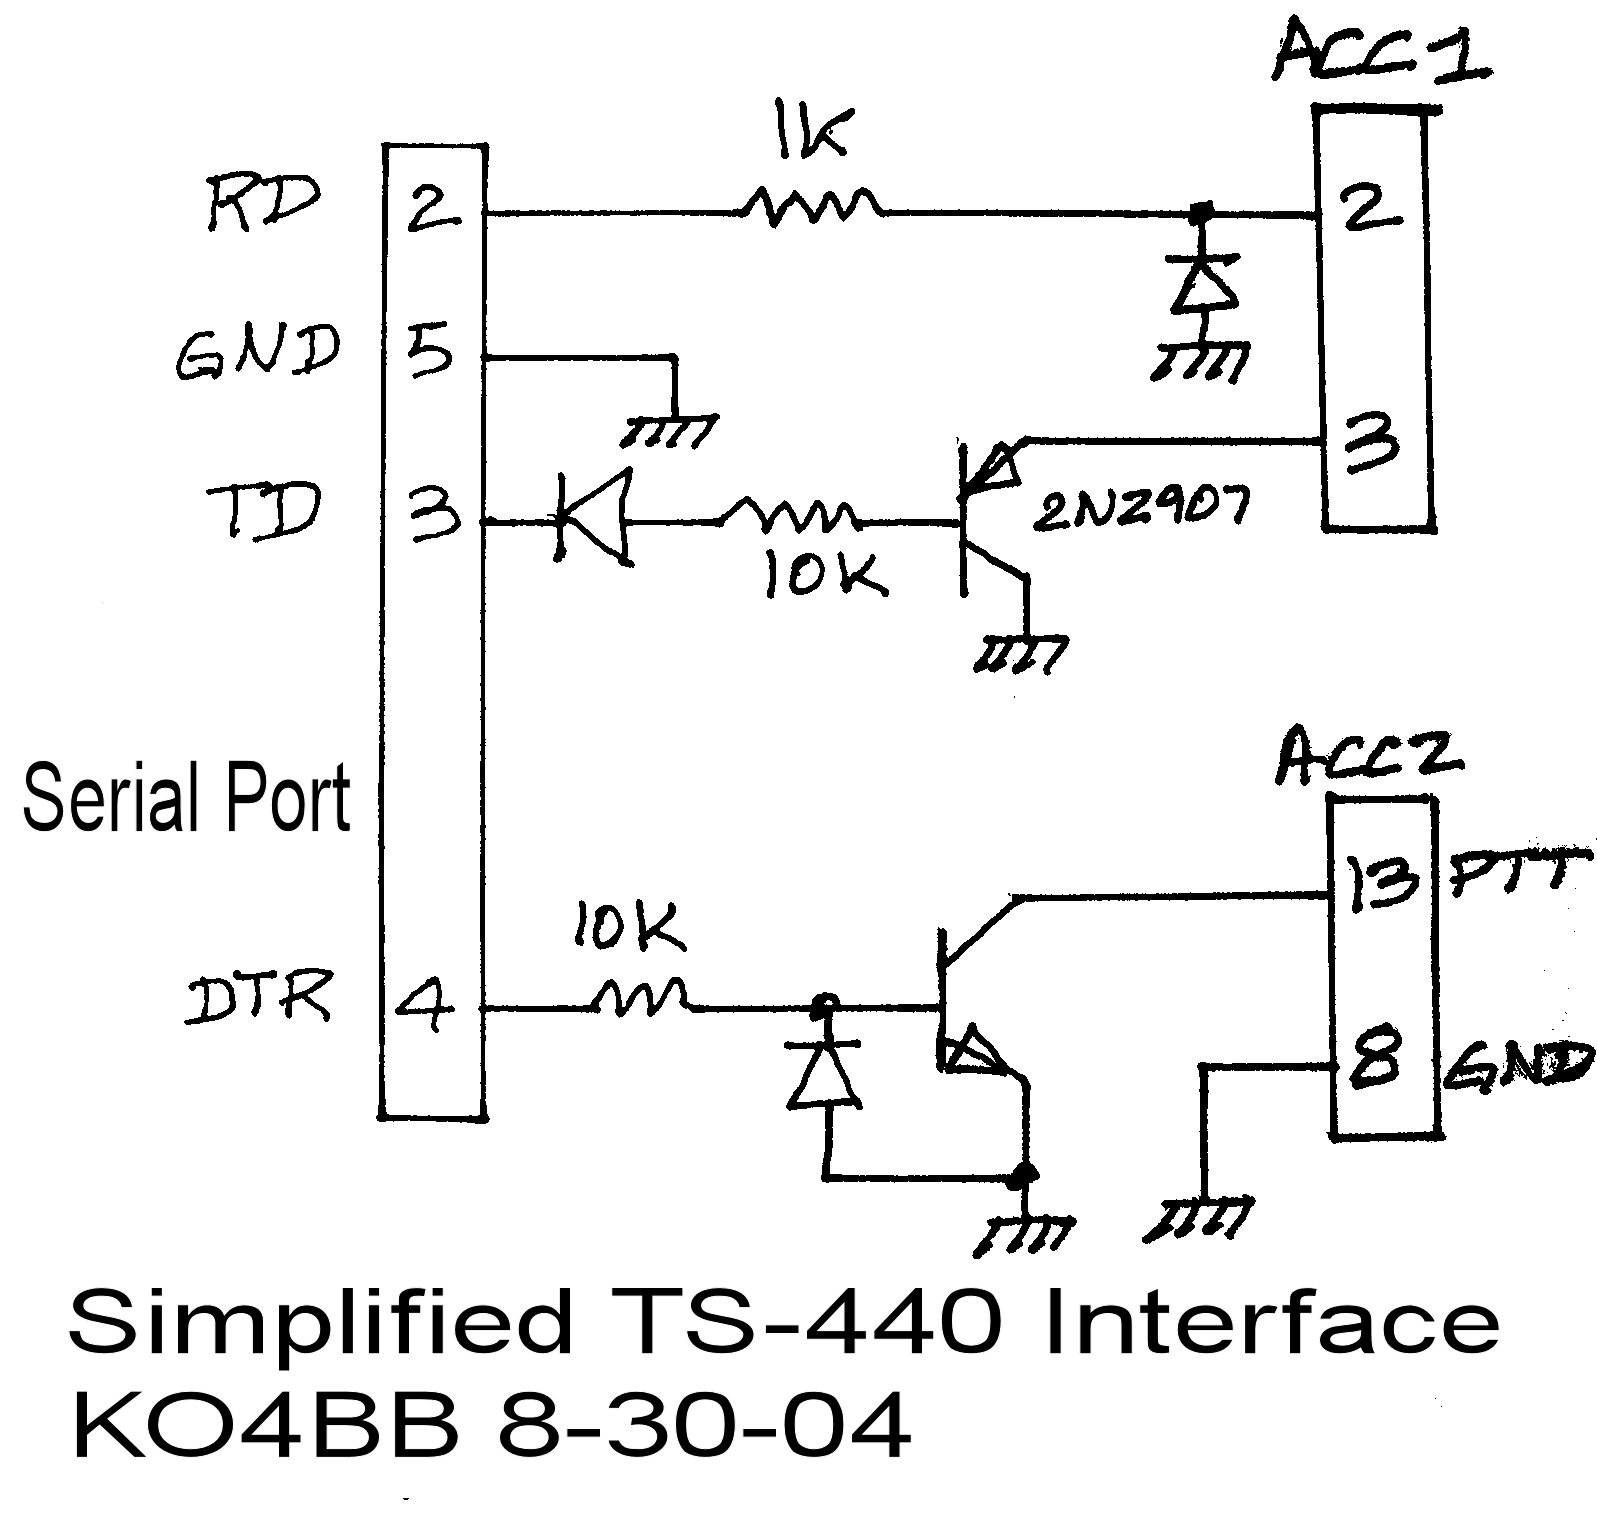 TS 440_Interface_simple ko4bb's ts 440 interface  at edmiracle.co